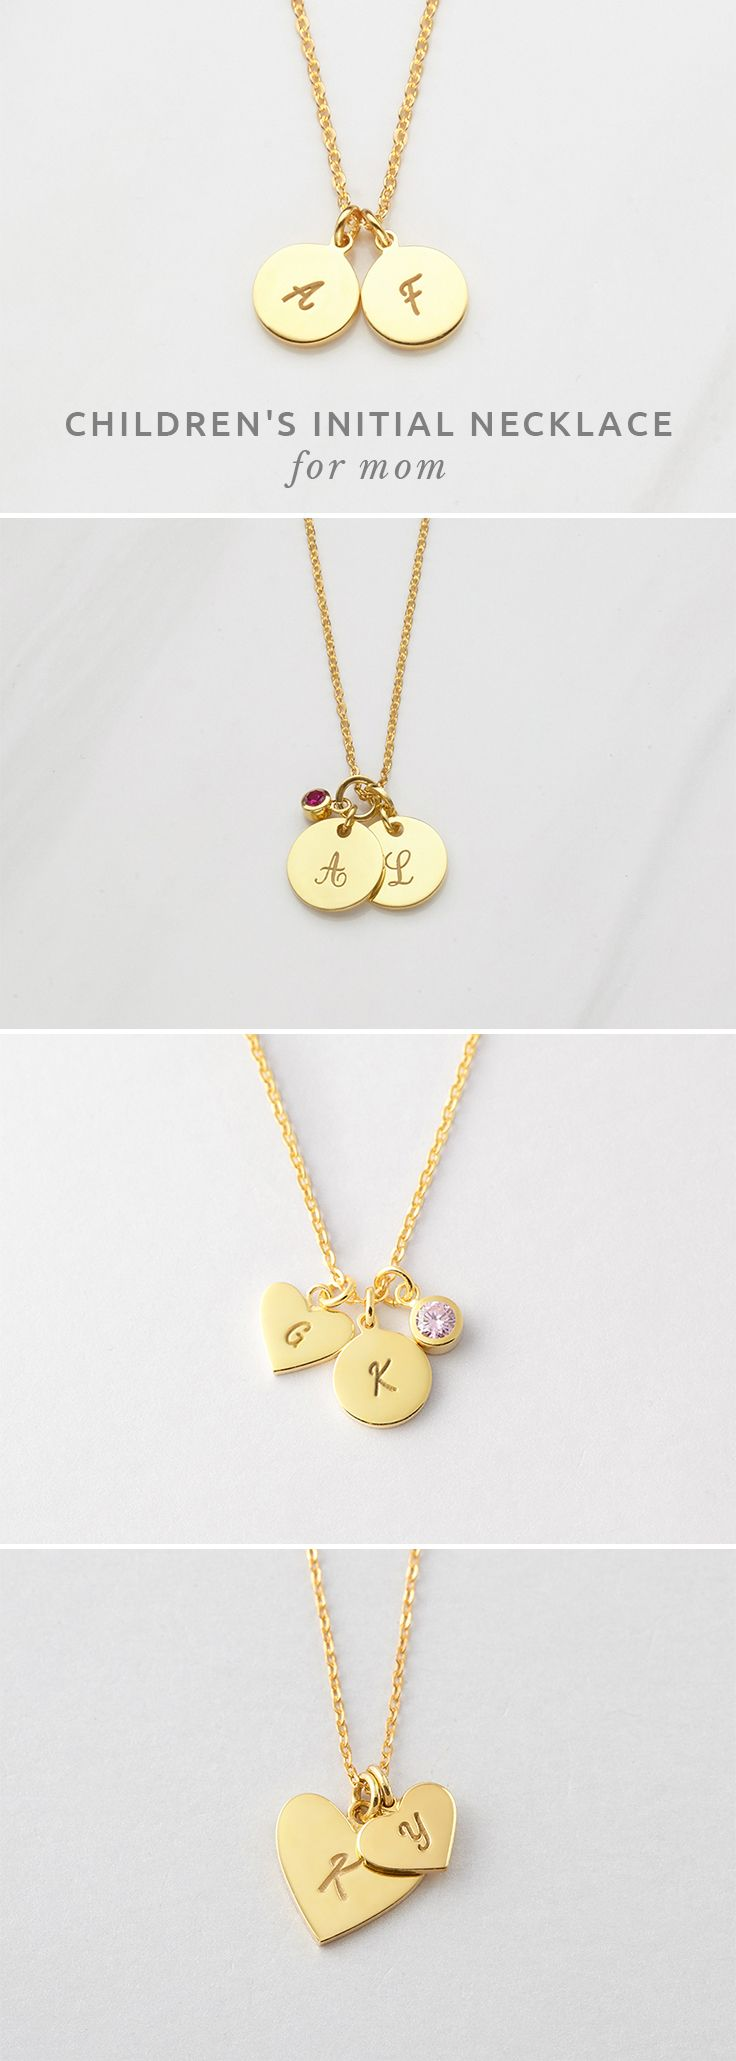 Initial Necklace • Double Initial Necklace • Children's Initial Necklace...